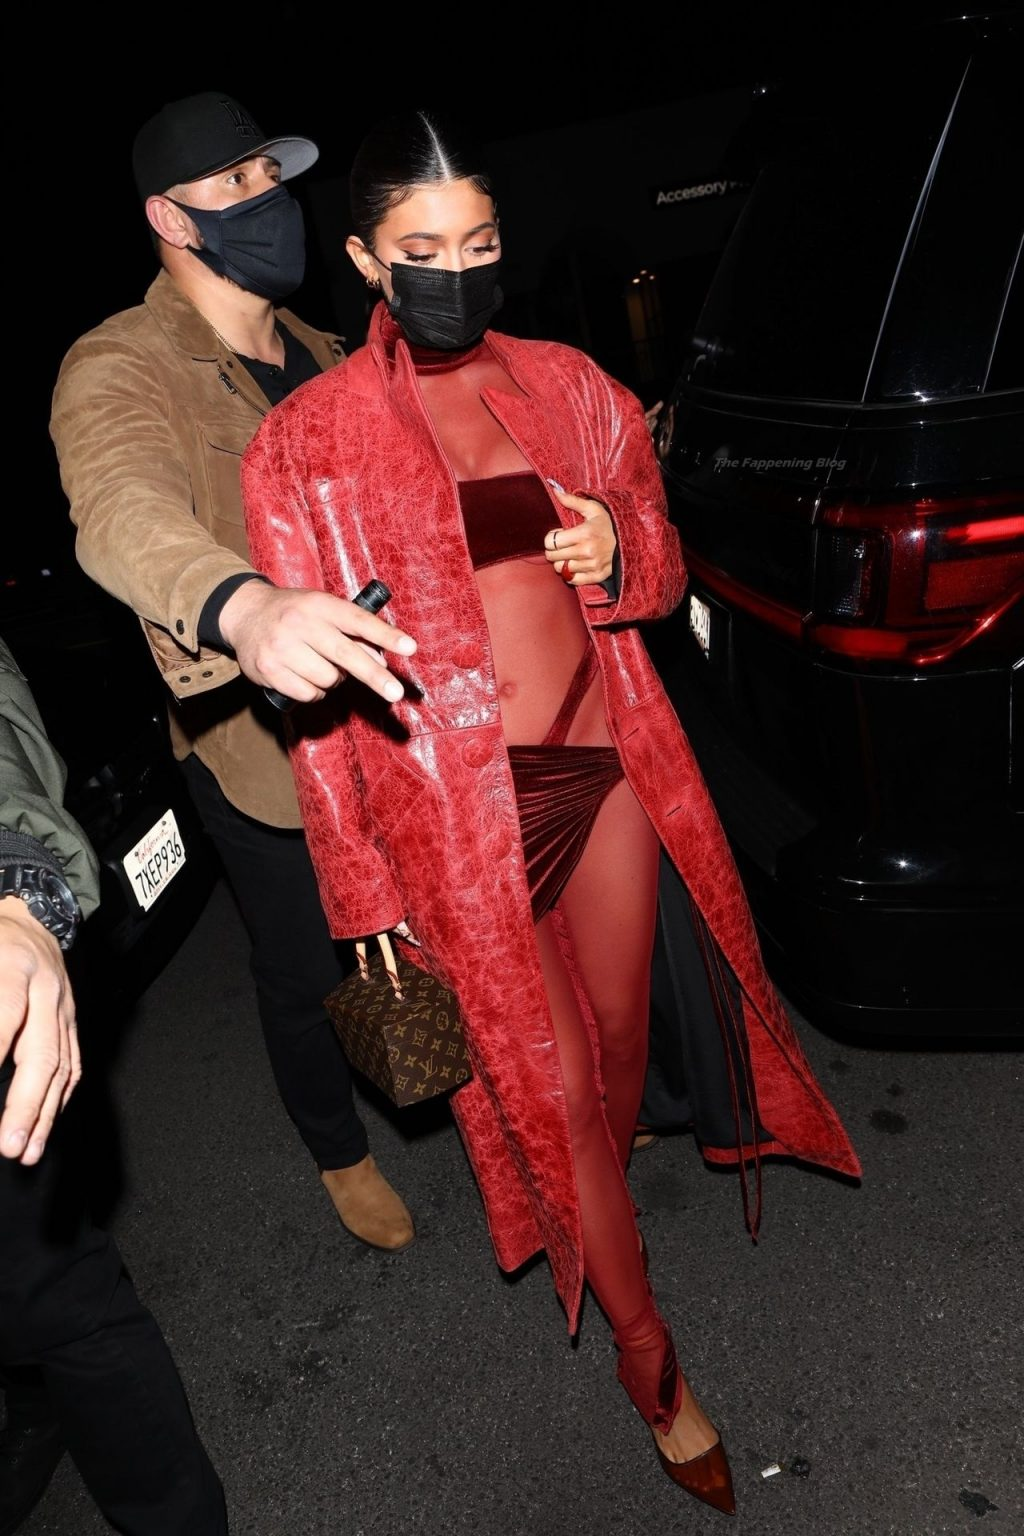 Kylie Jenner Arrives for Justin Bieber's Album Release Party in a Sexy Red Ensemble (88 Photos)